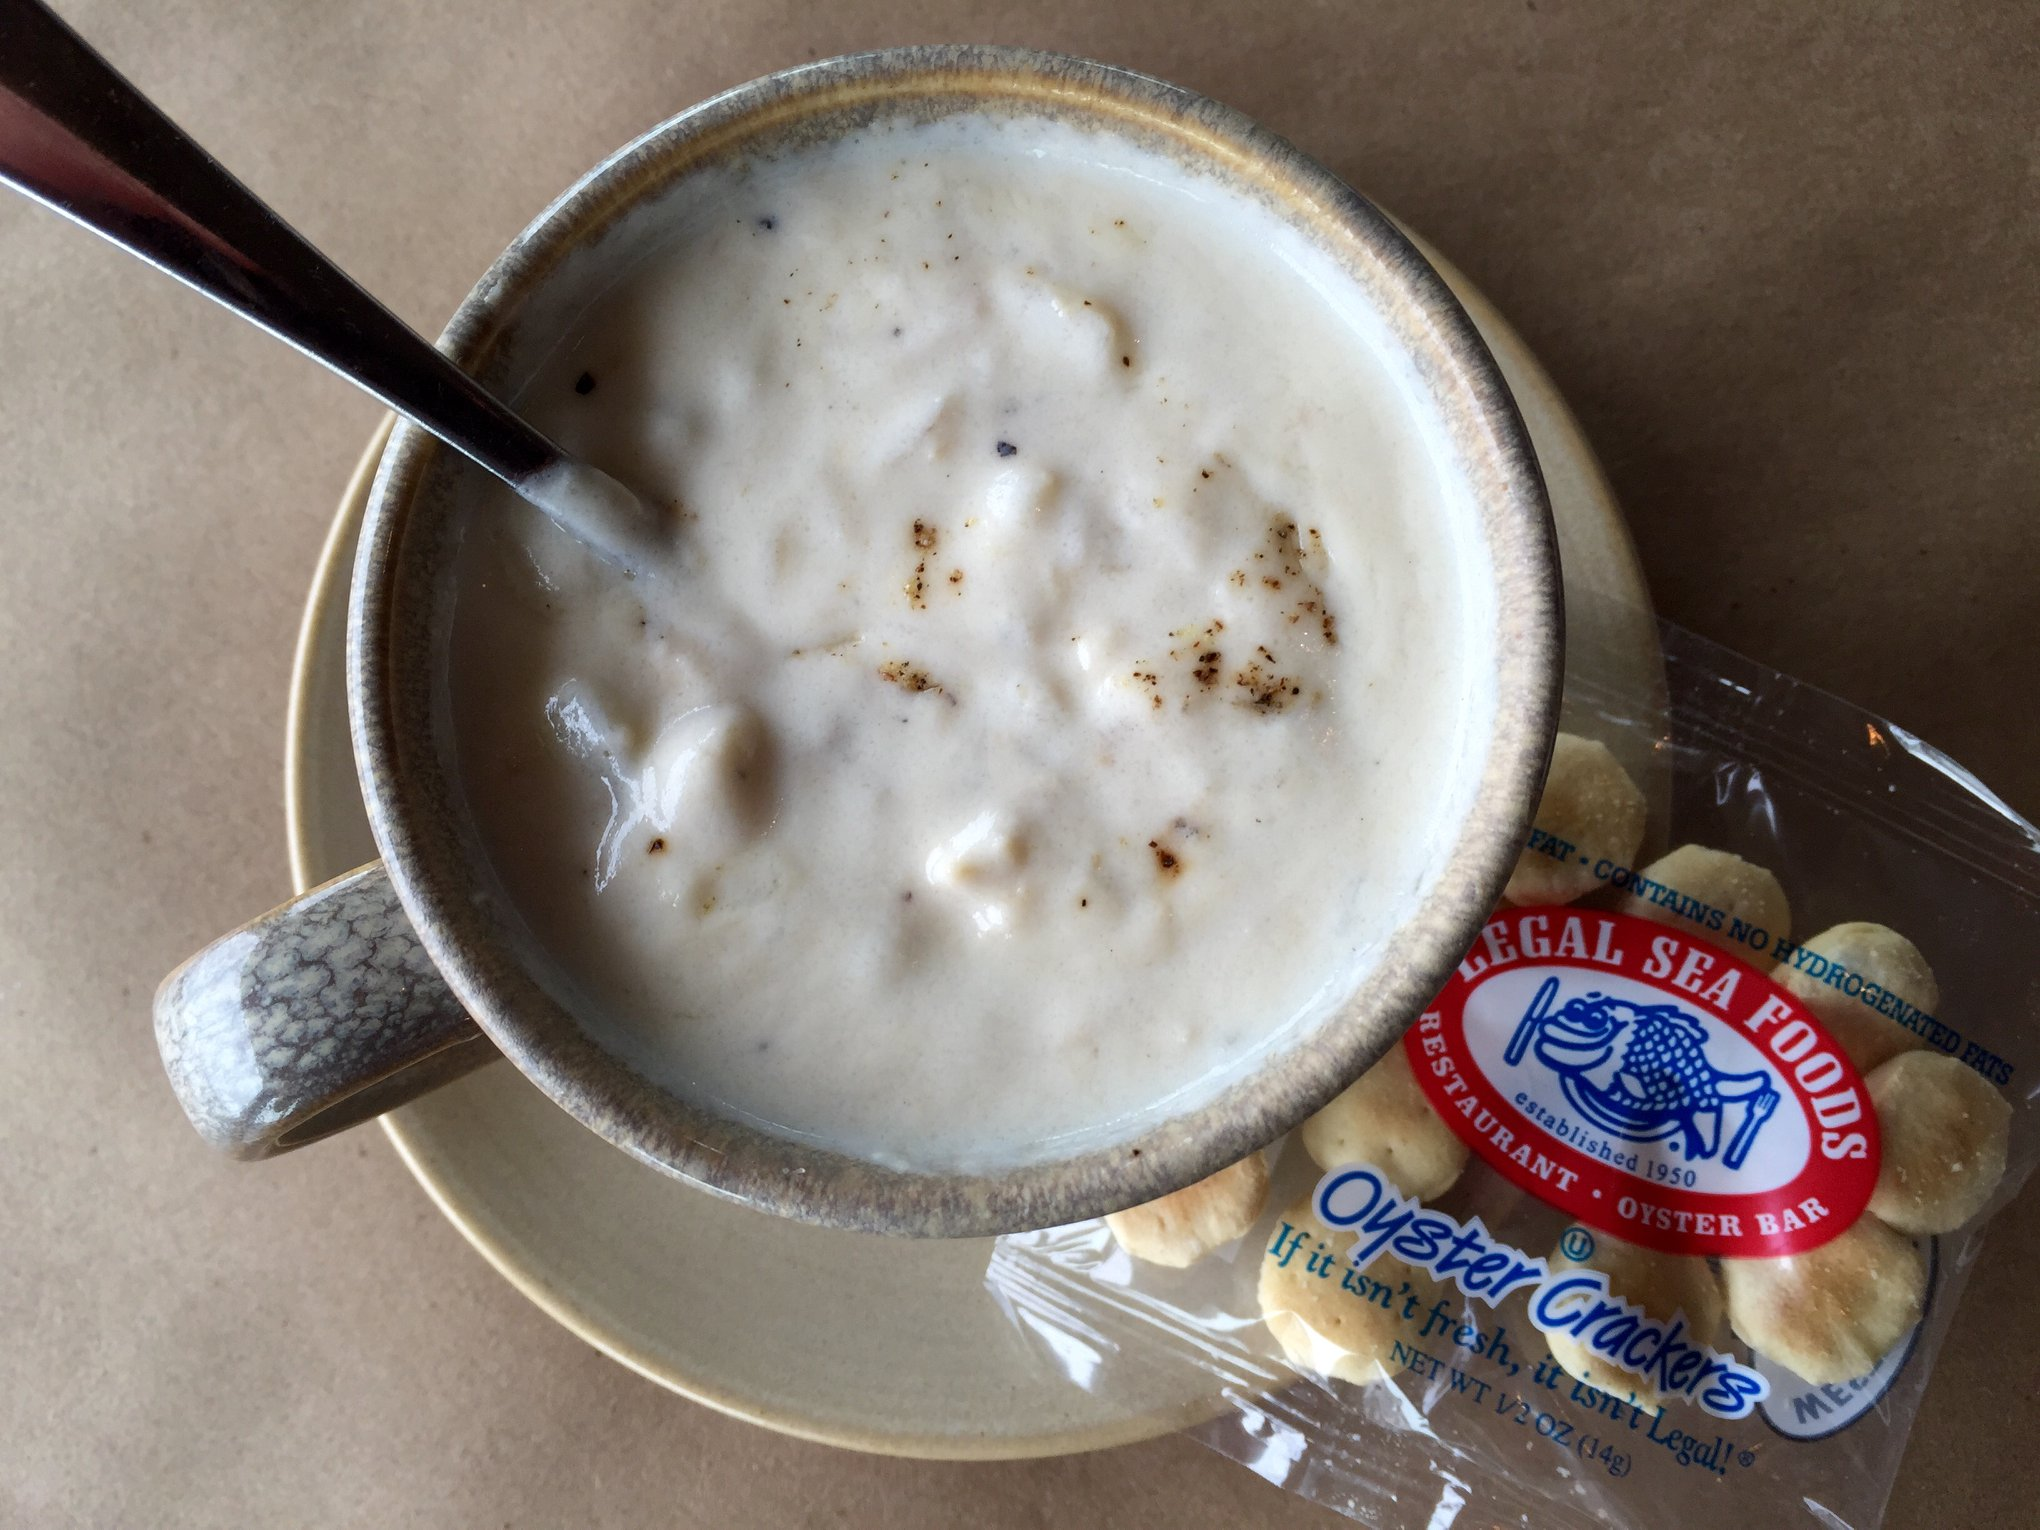 Where to Eat New England Clam Chowder in Boston